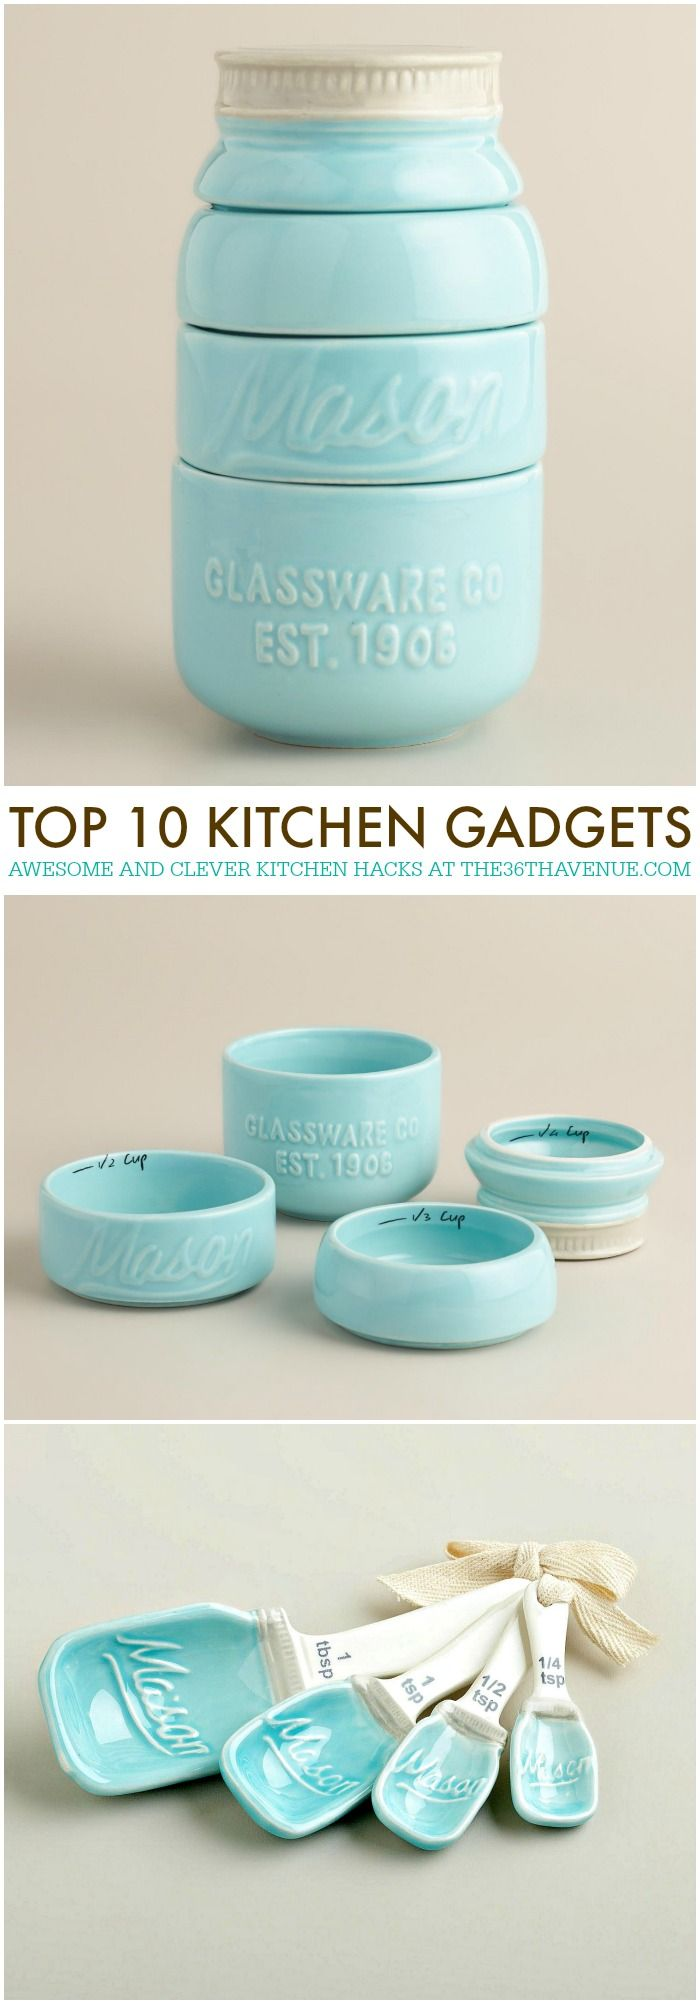 Top 10 Kitchen Gadgets | Clever gadgets, Kitchen gadgets and Kitchens